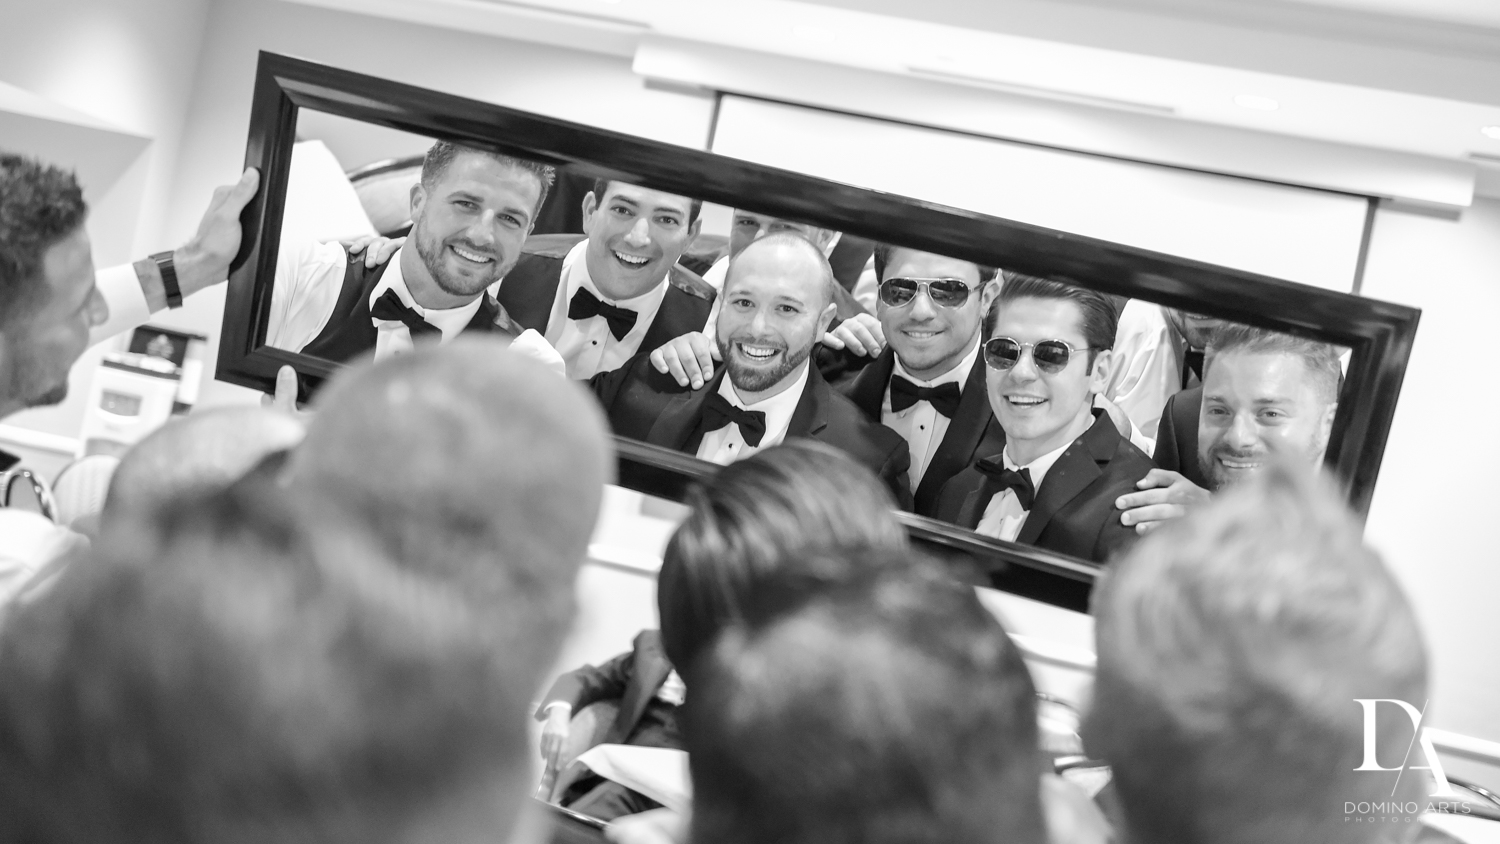 Groom and groomsmen getting ready at Romantic Outdoors Wedding at Woodfield Country Club in Boca Raton, Florida